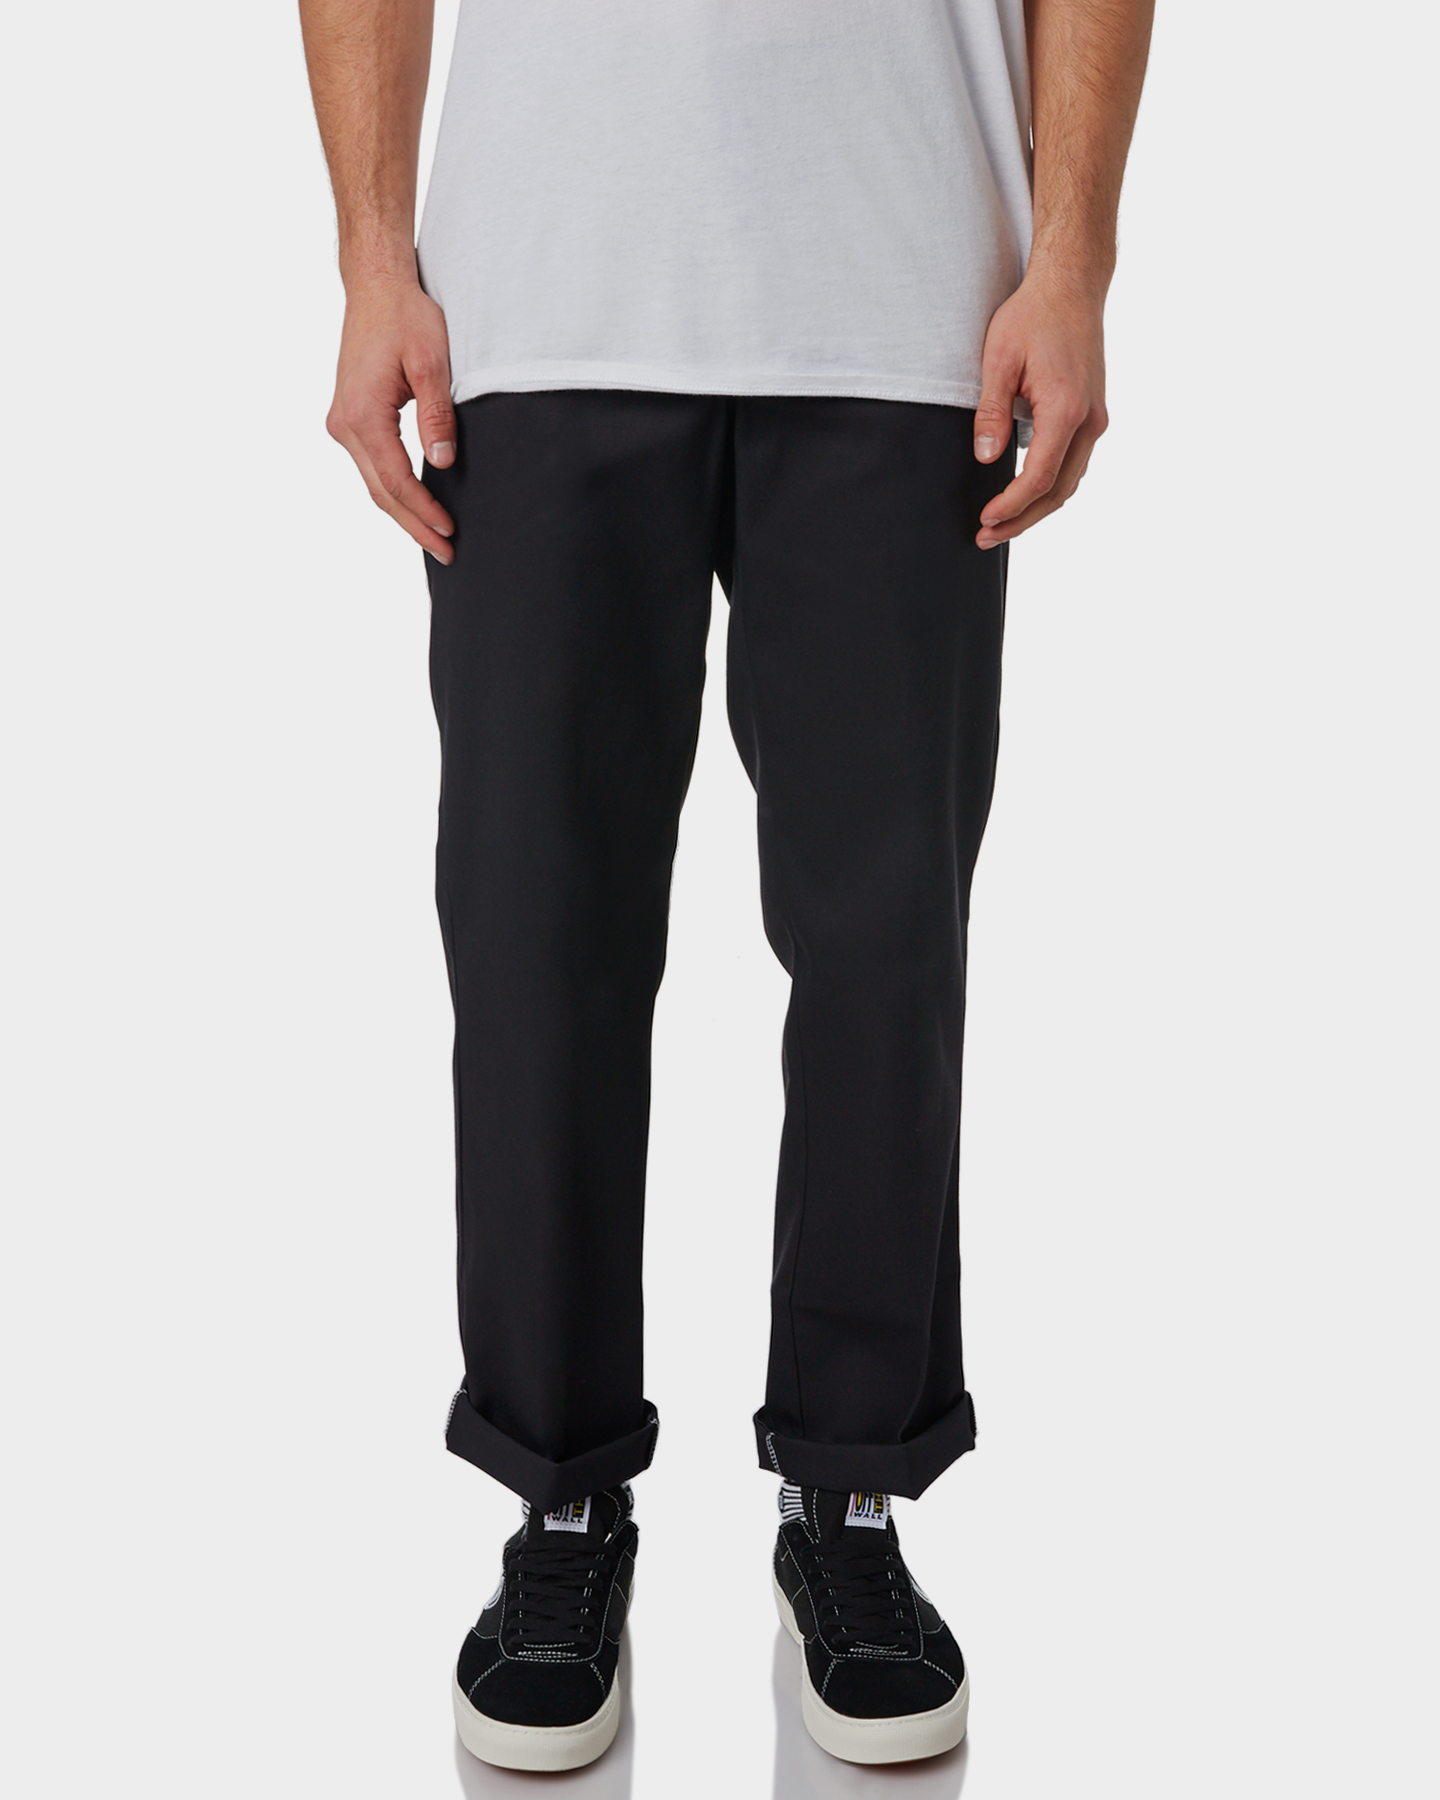 Dickies Black Polyester Cotton Original Fit Straight Mens Work Pant